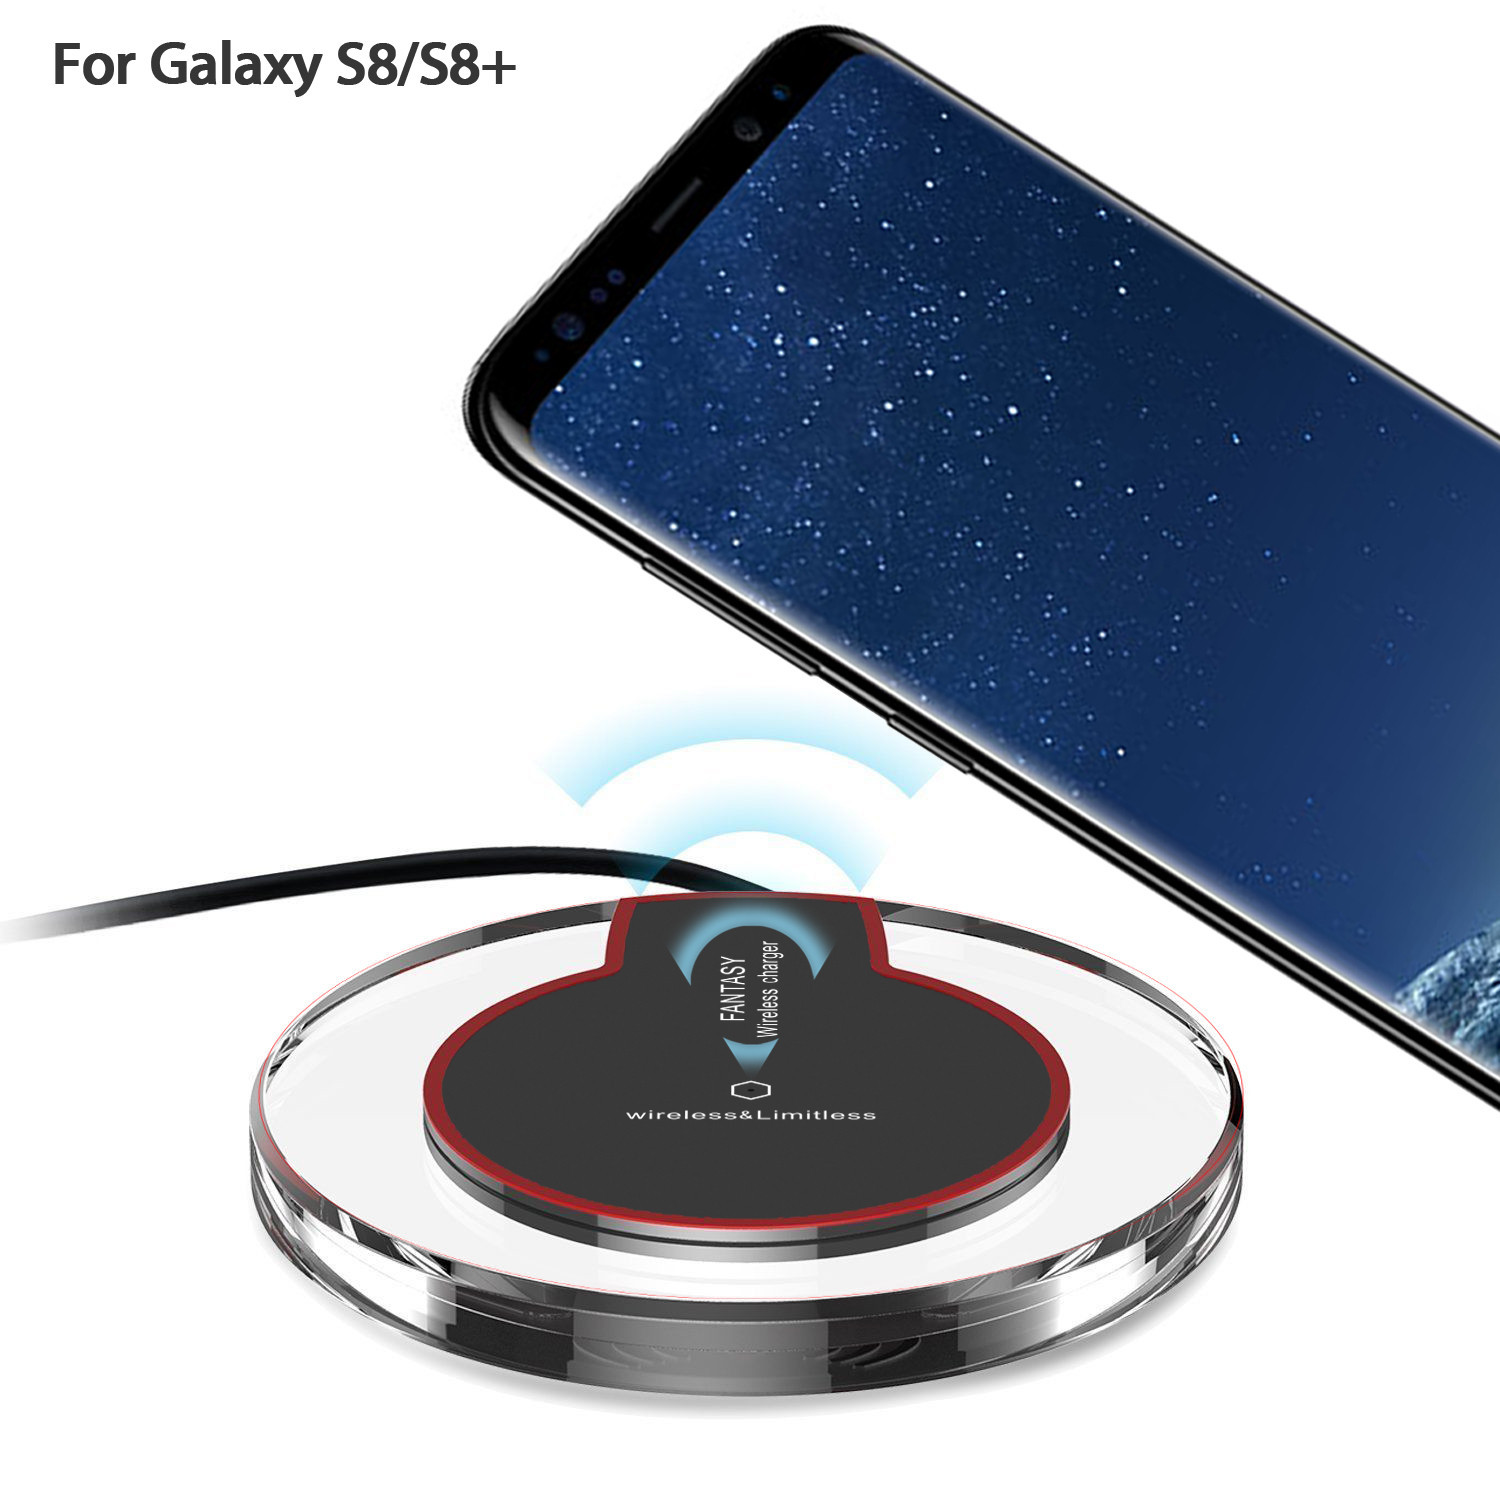 Wireless Charger Charging Pad For Samsung Galaxy 8/S8+/S7 S6 Edge S6 Edge+ Plus Lumia title=